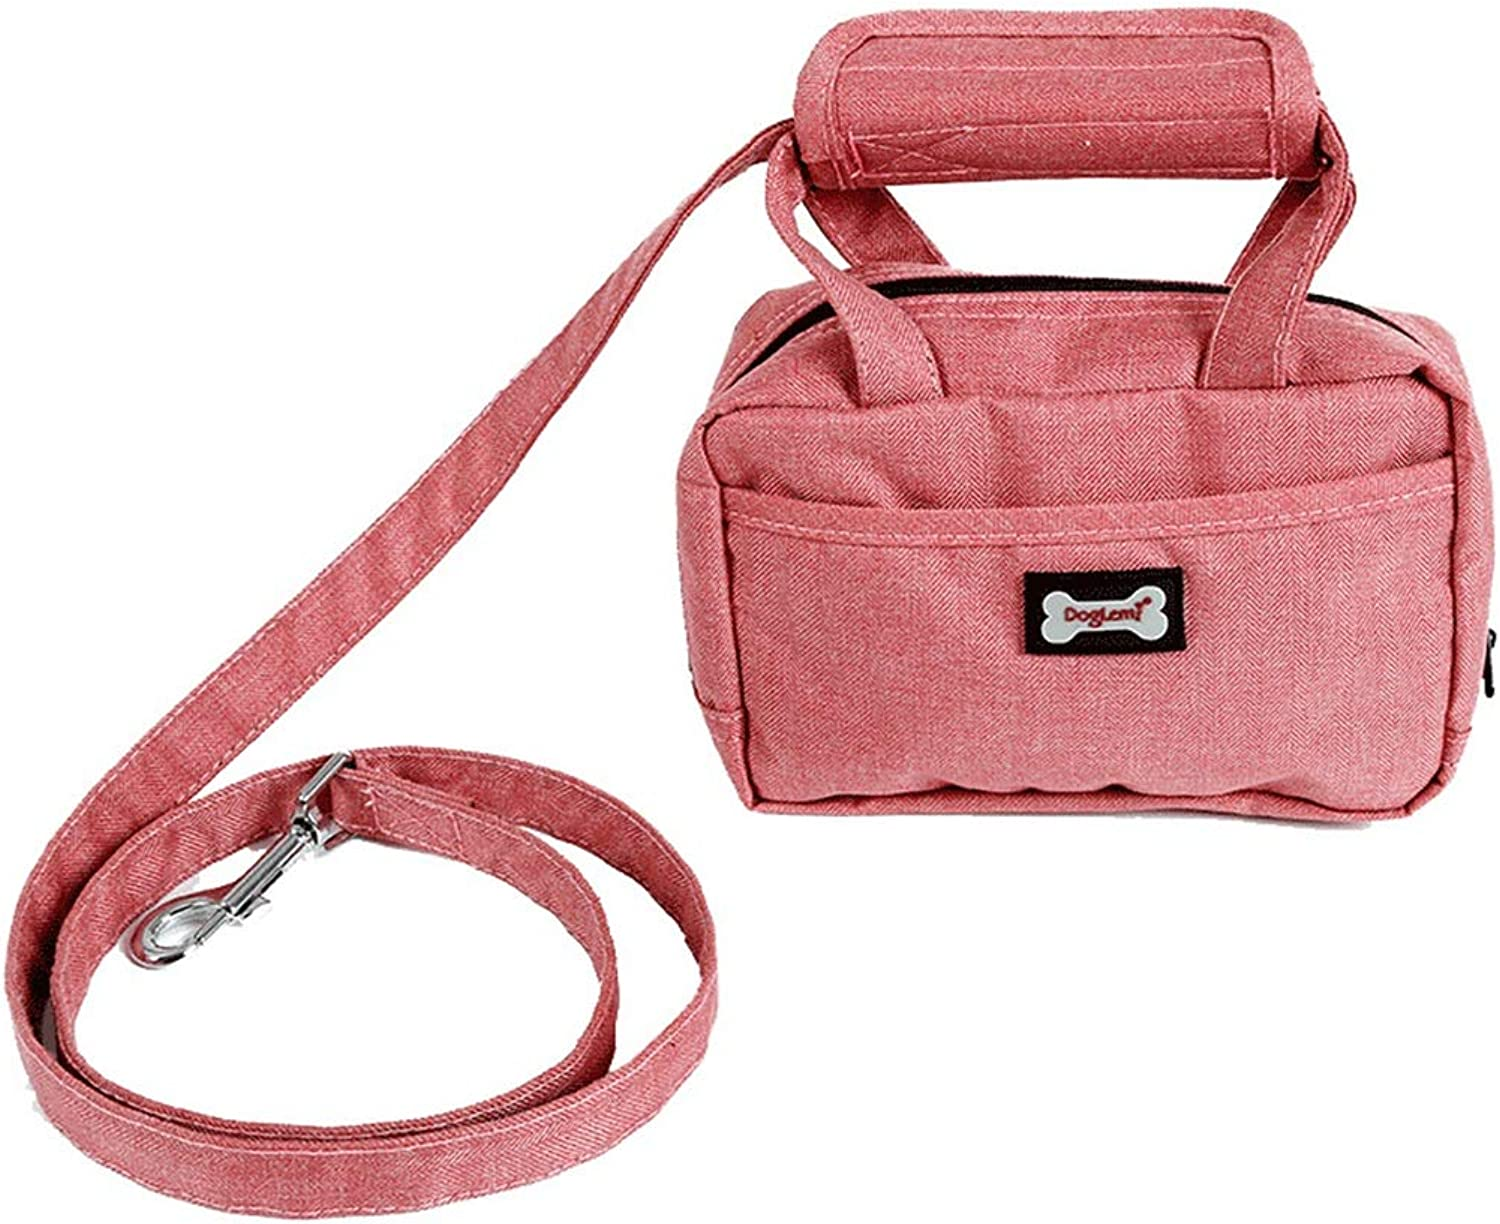 QIQIPET Pet Leads Leash for Small Medium Large Dog Pet Leash Dog Lead Traction Rope (color   Pink)